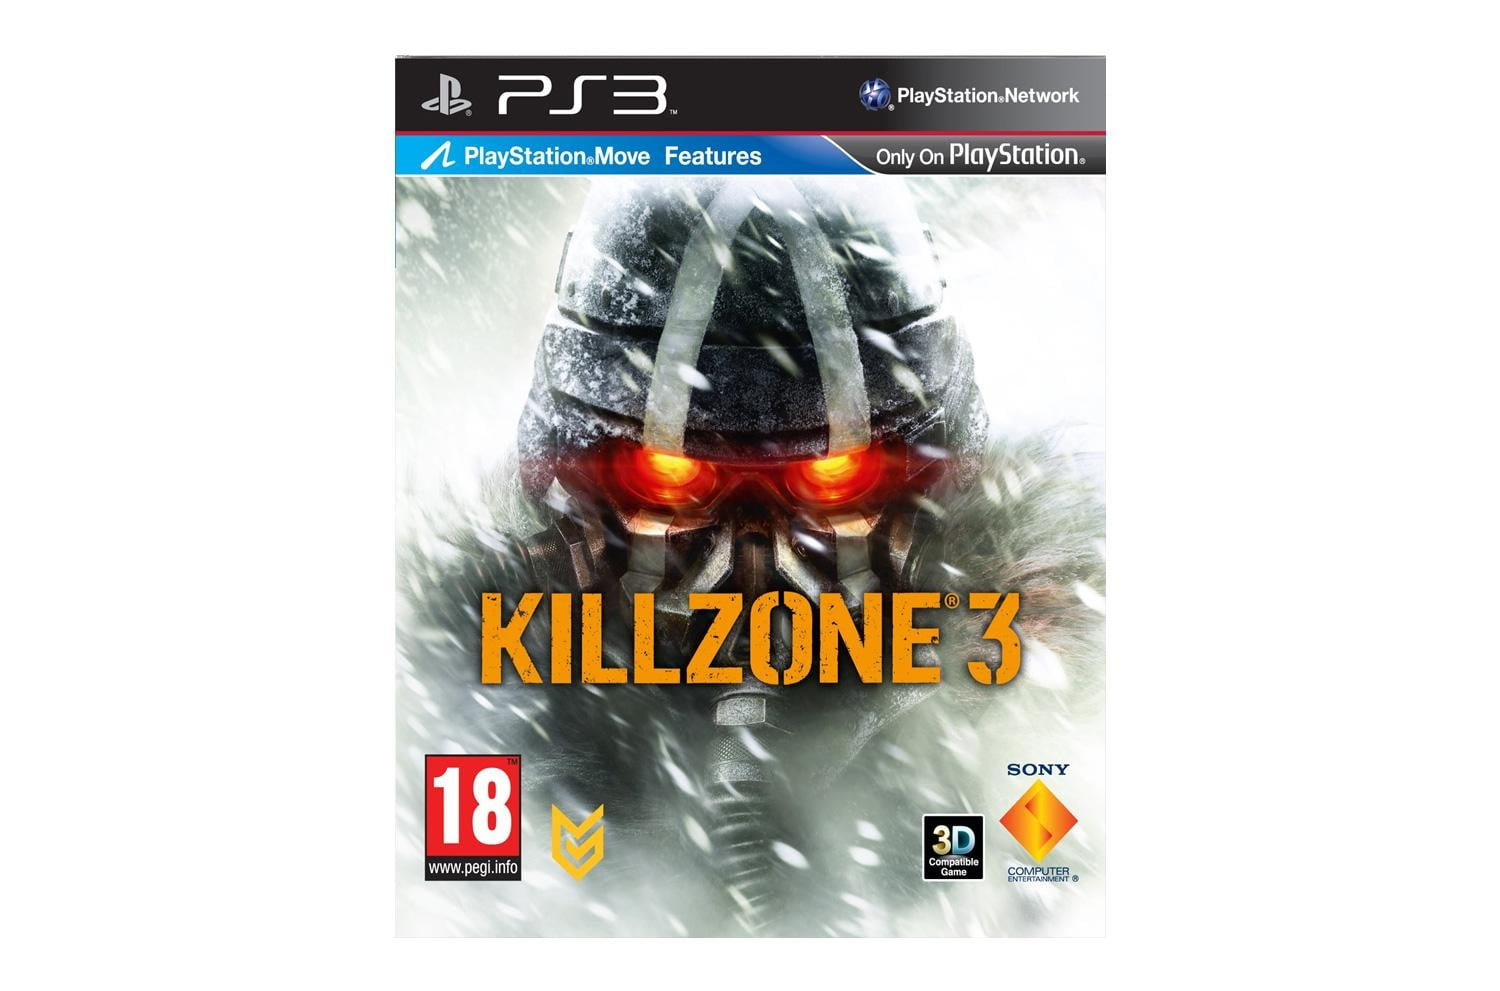 Killzone-3-cover-art